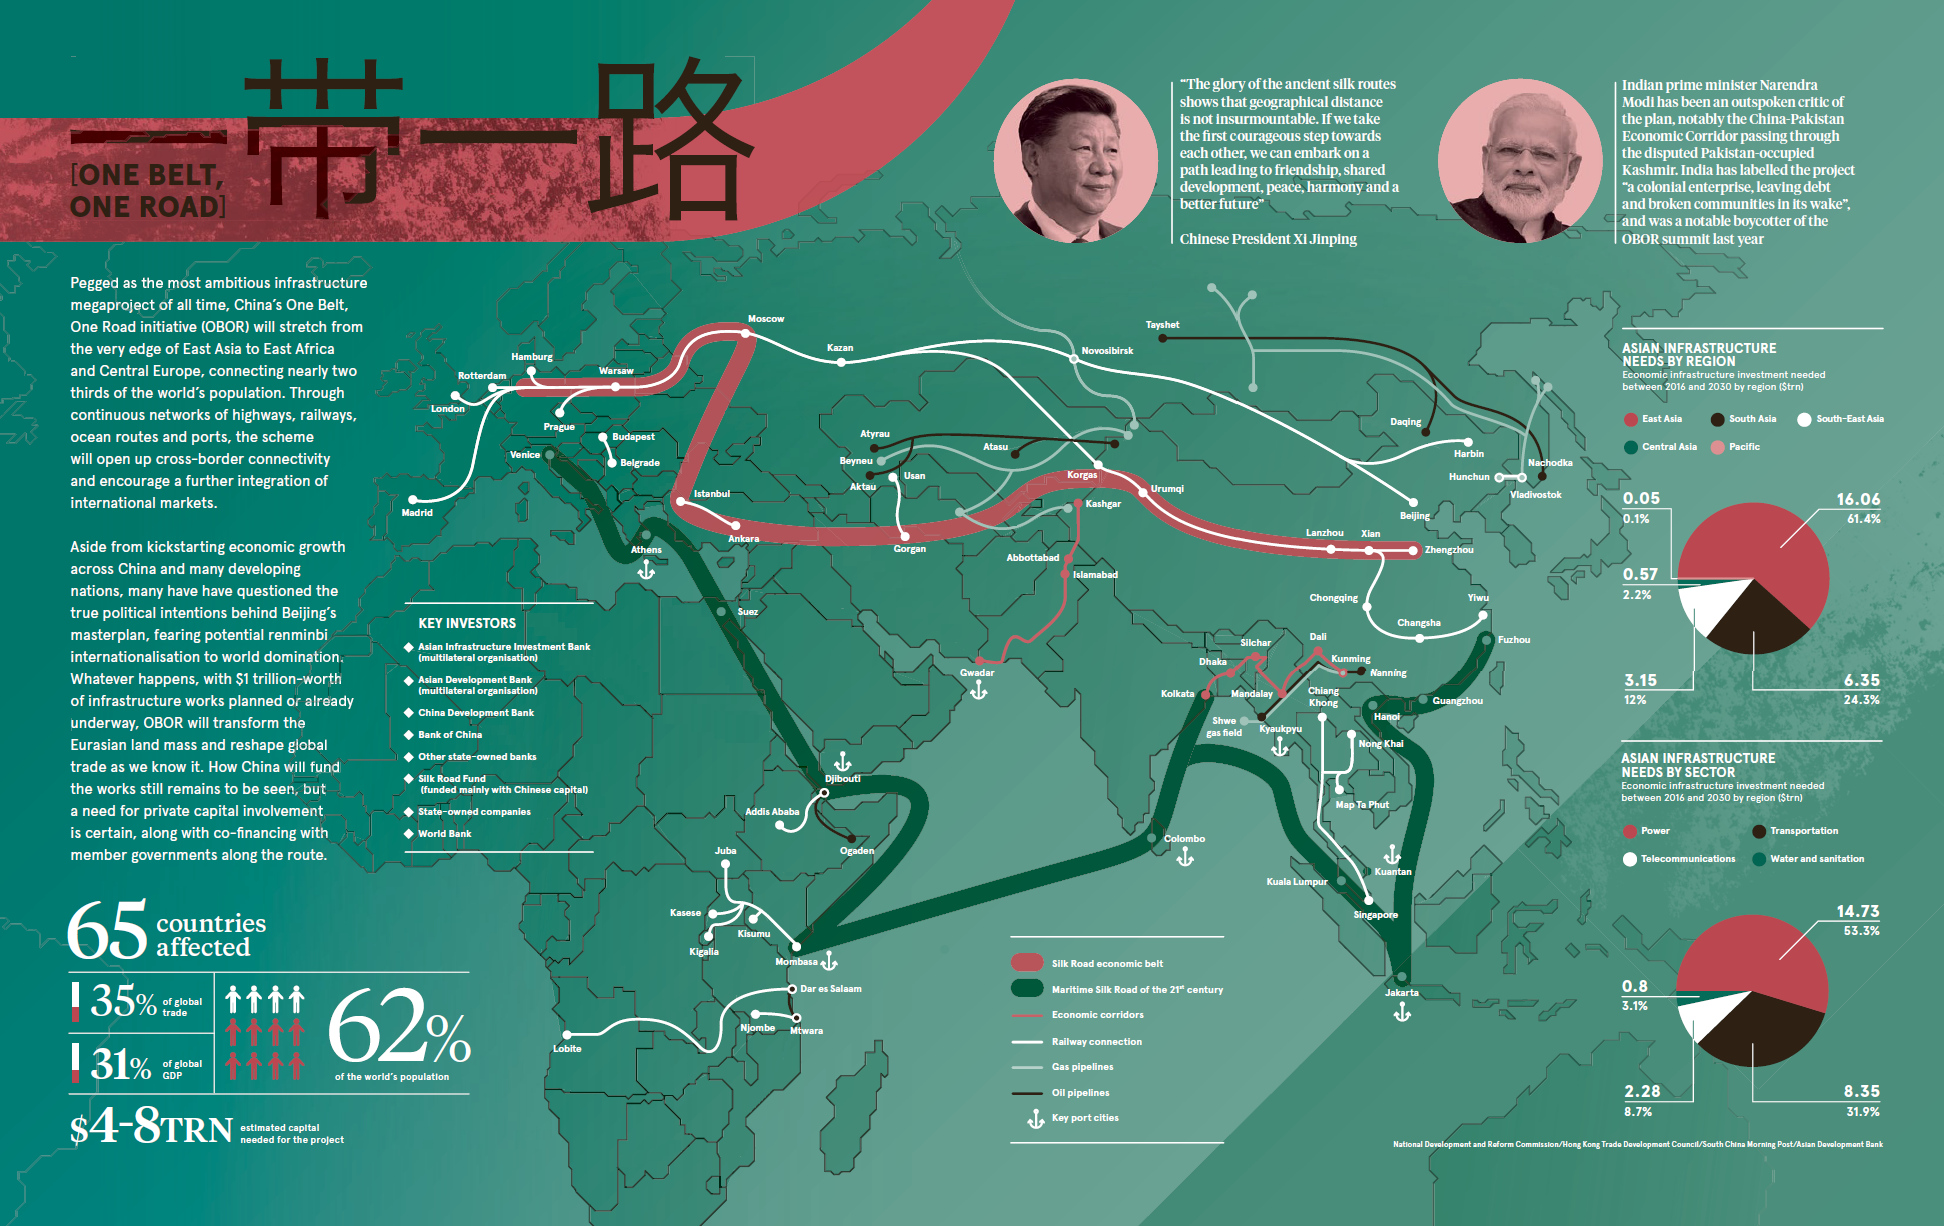 Visualizing China's Most Ambitious Megaproject